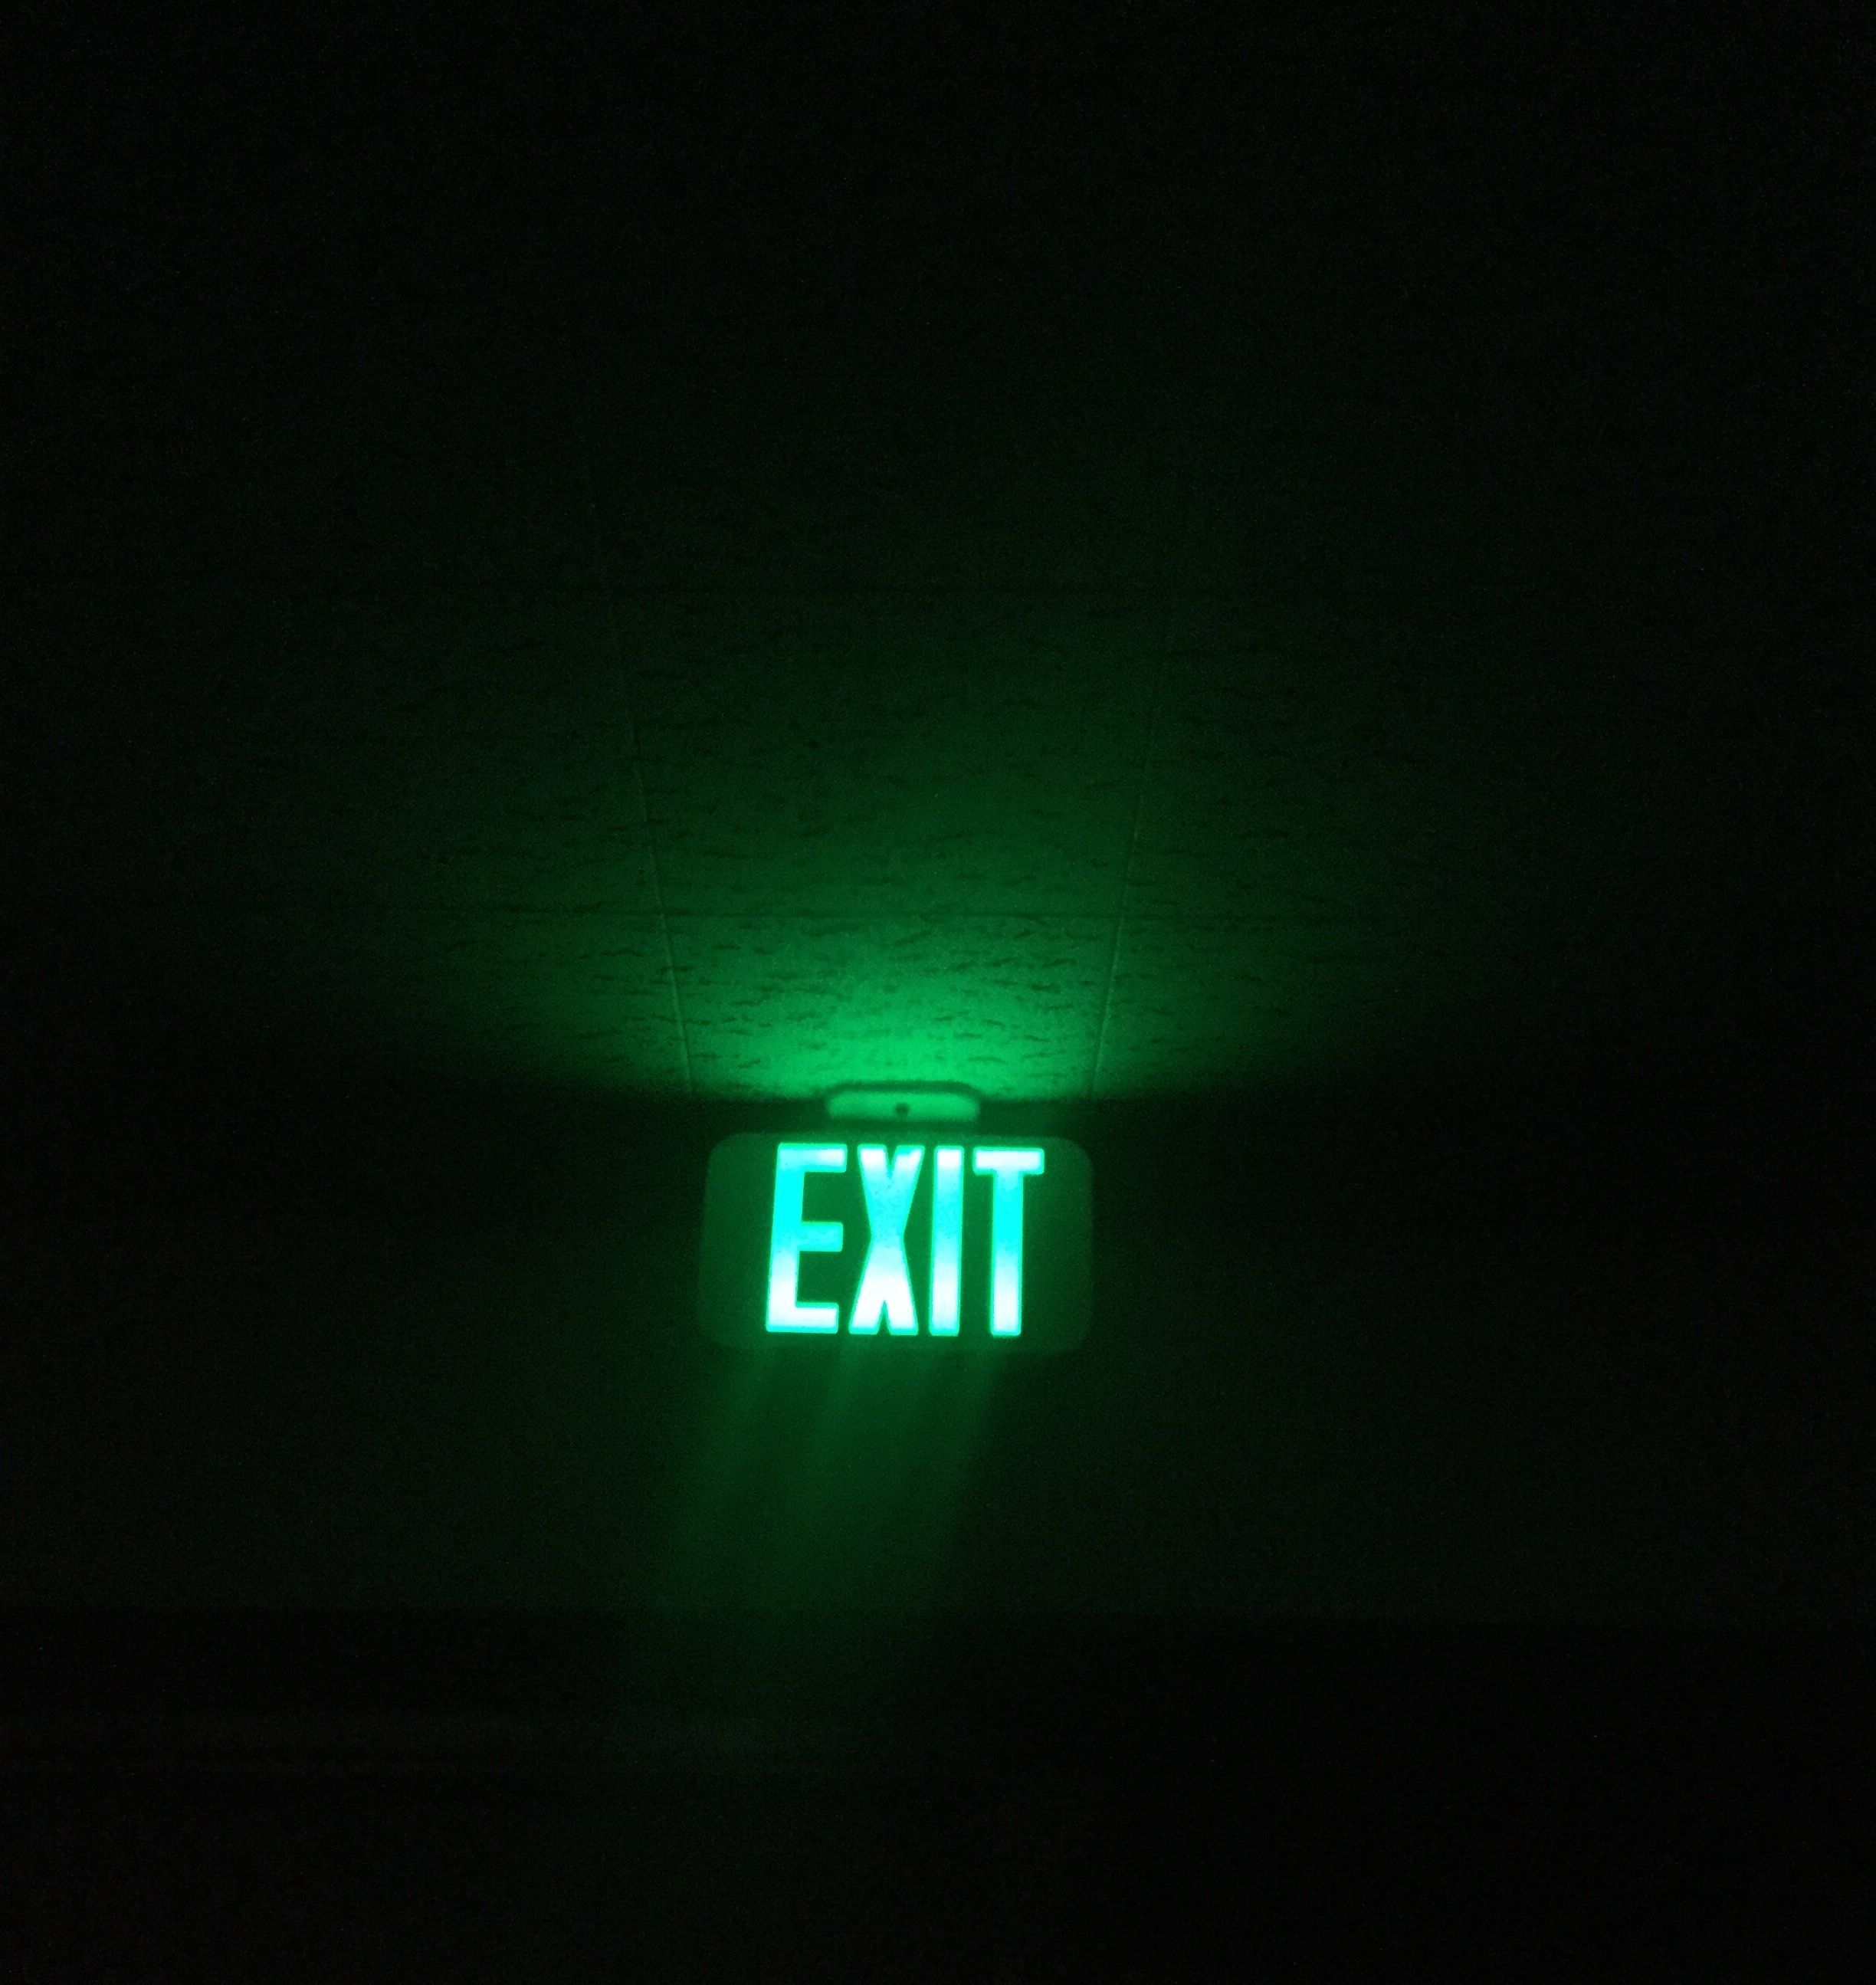 Fun Fact I Found This Green Aesthetic Tumblr Grunge Dark Exit Sign In An Old Church Yes That Was Dark Green Aesthetic Green Aesthetic Green Aesthetic Tumblr